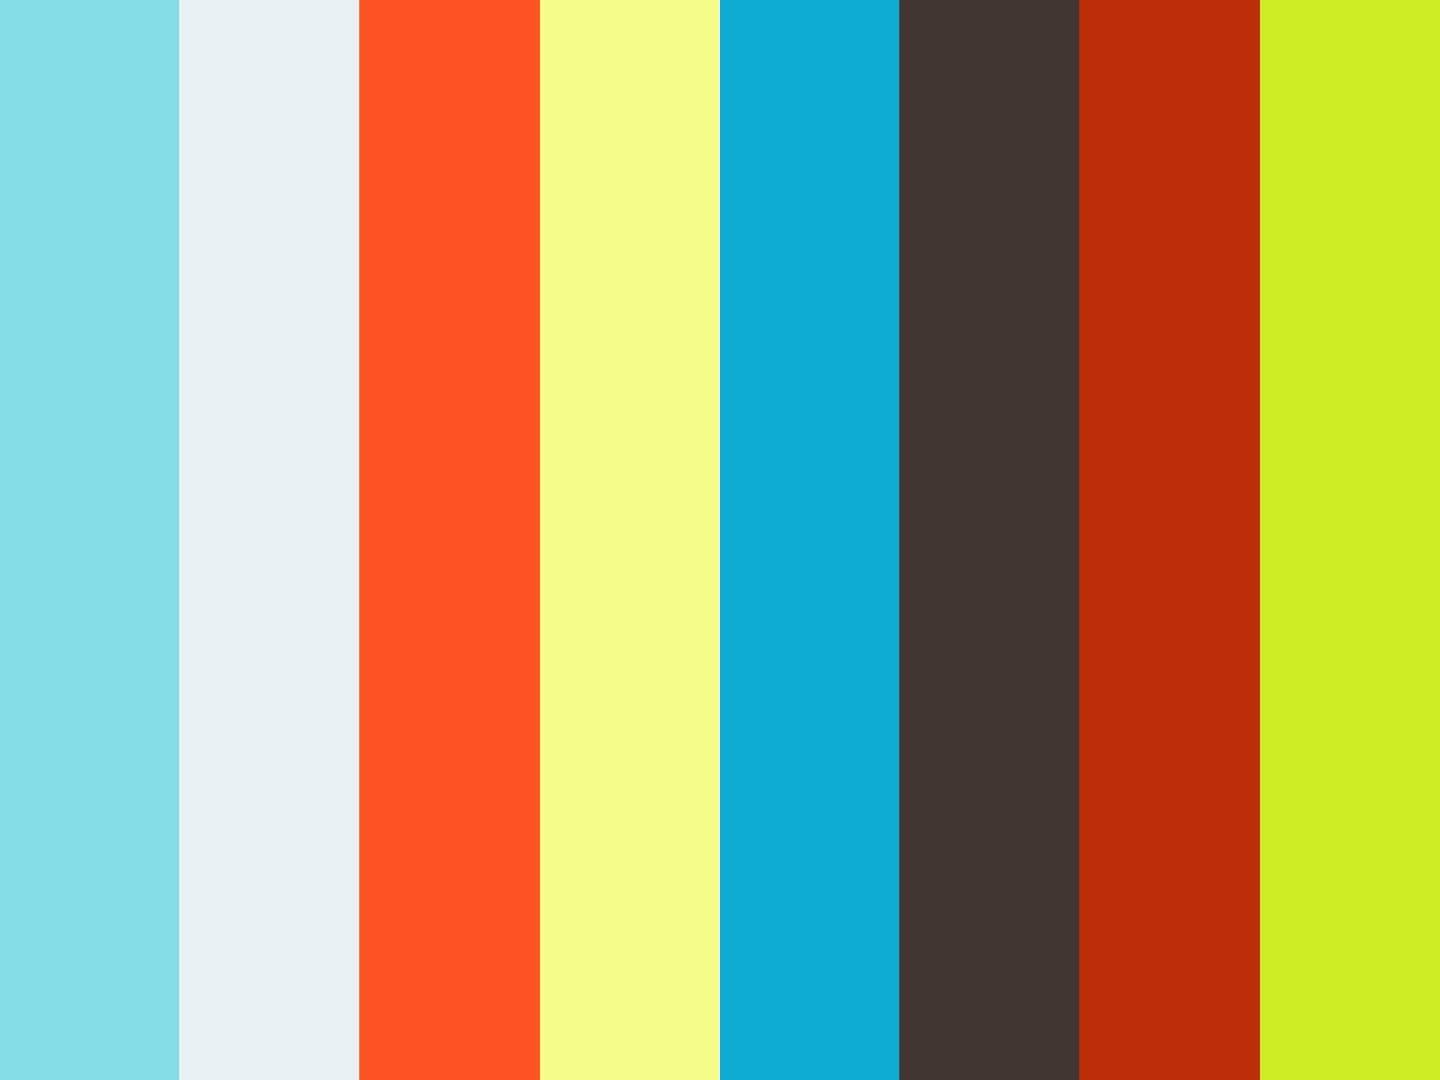 Bob marley and the wailers legend on vimeo bob marley and the wailers legend thecheapjerseys Gallery